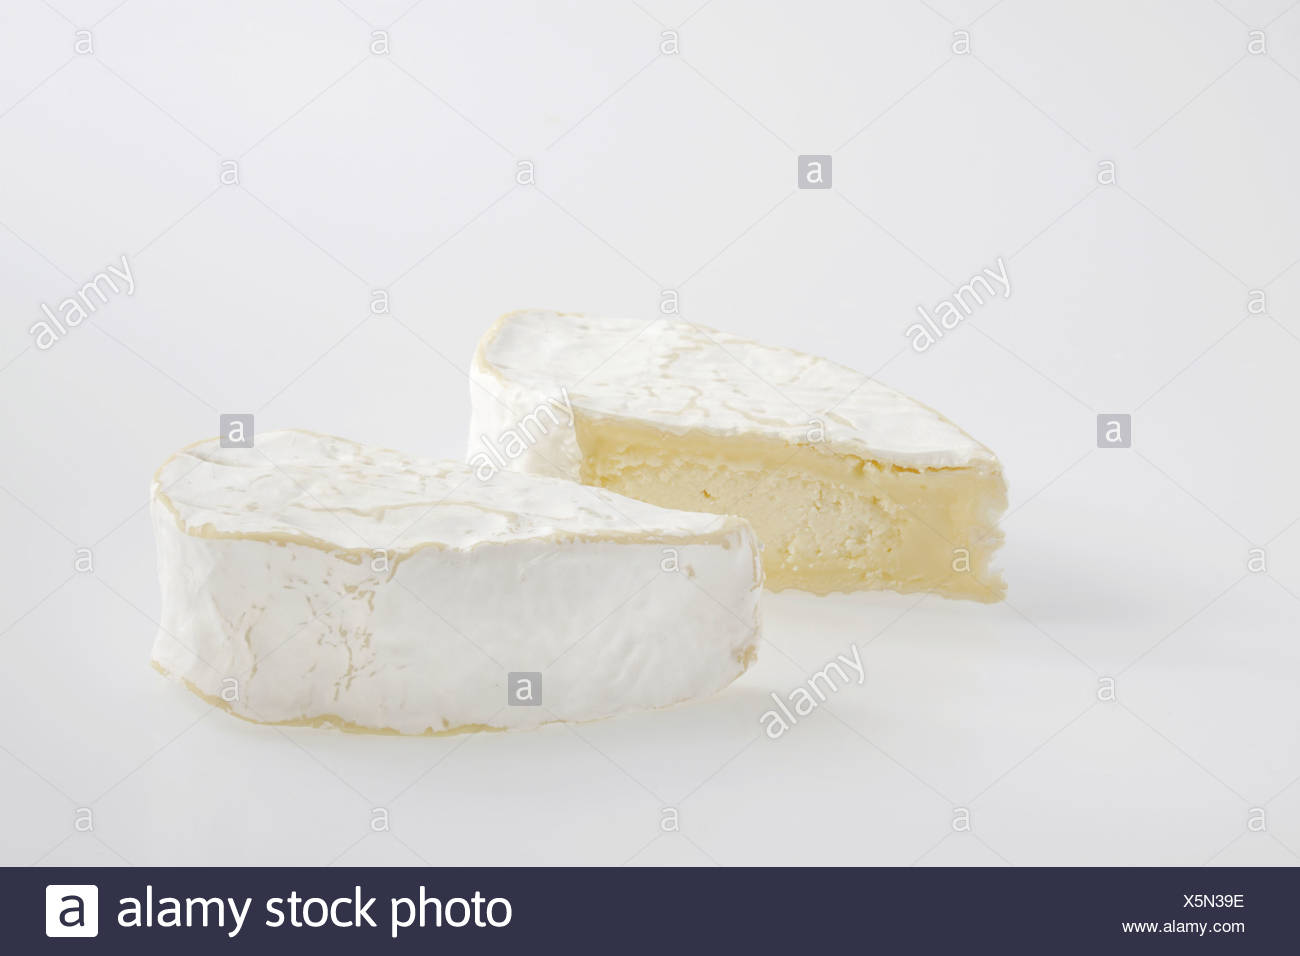 Slice heart of French Coeur de Neufchatel AOC cow's milk cheese - Stock Image